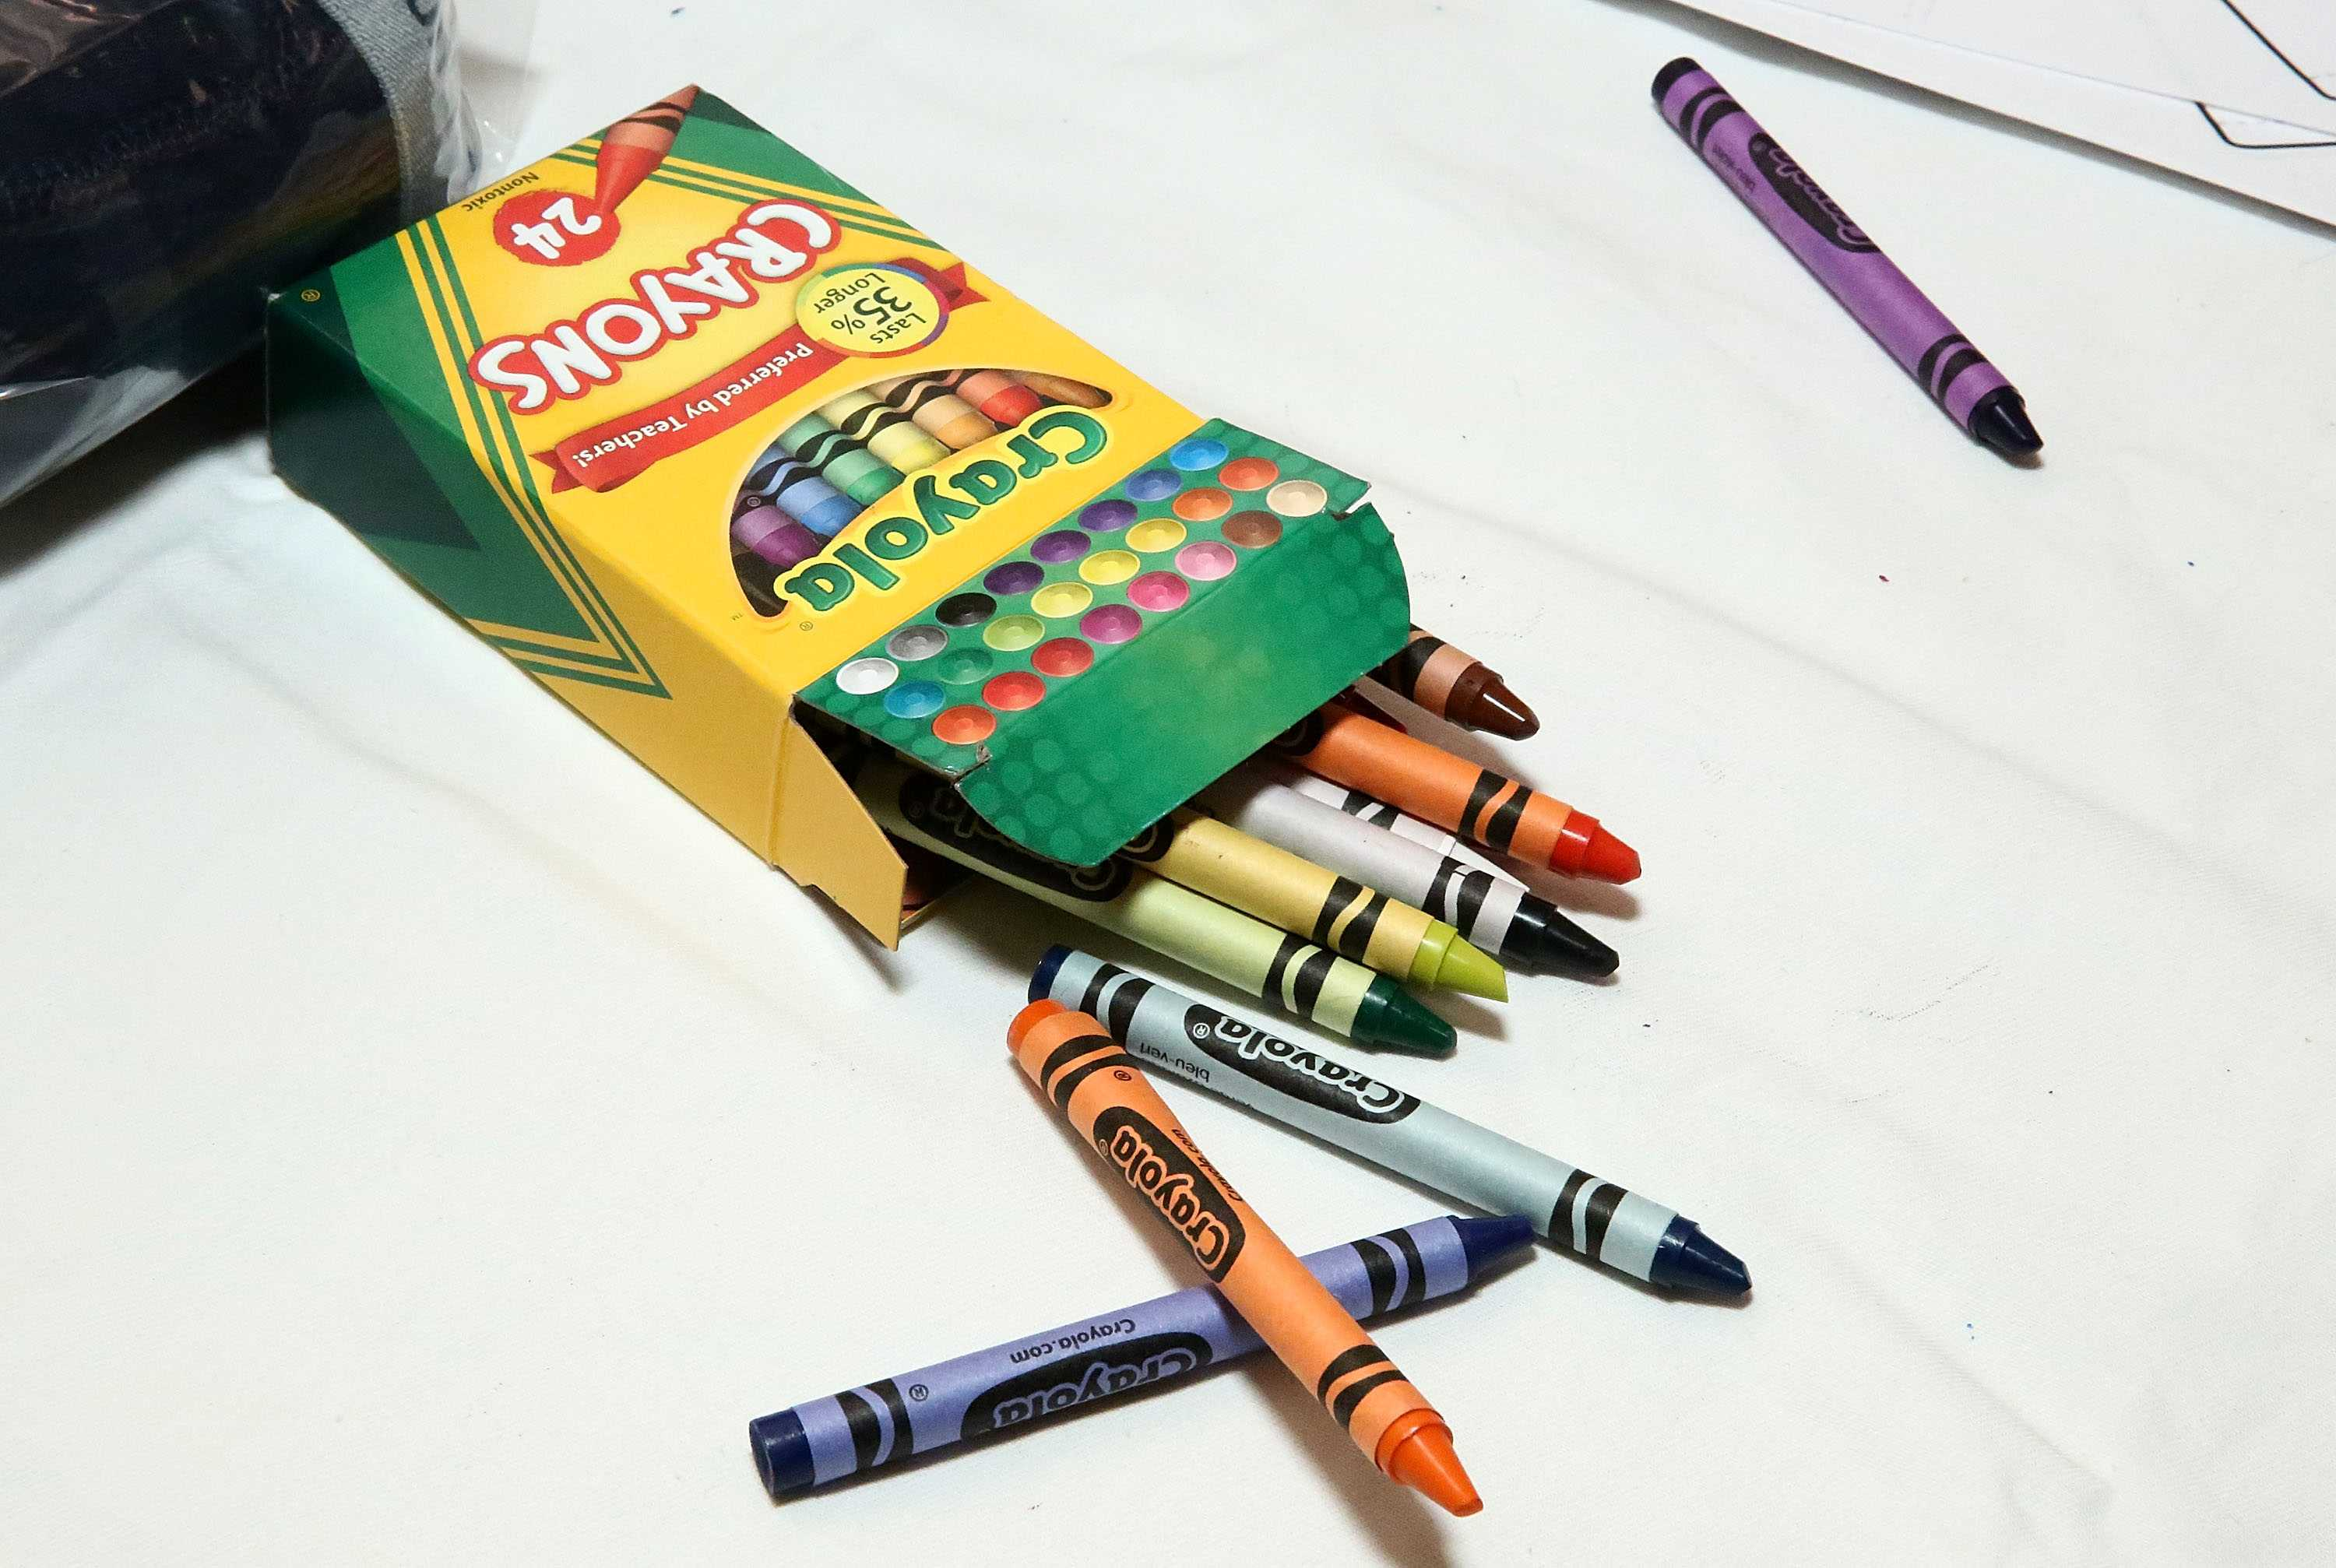 Crayola to Retire a Crayon Color